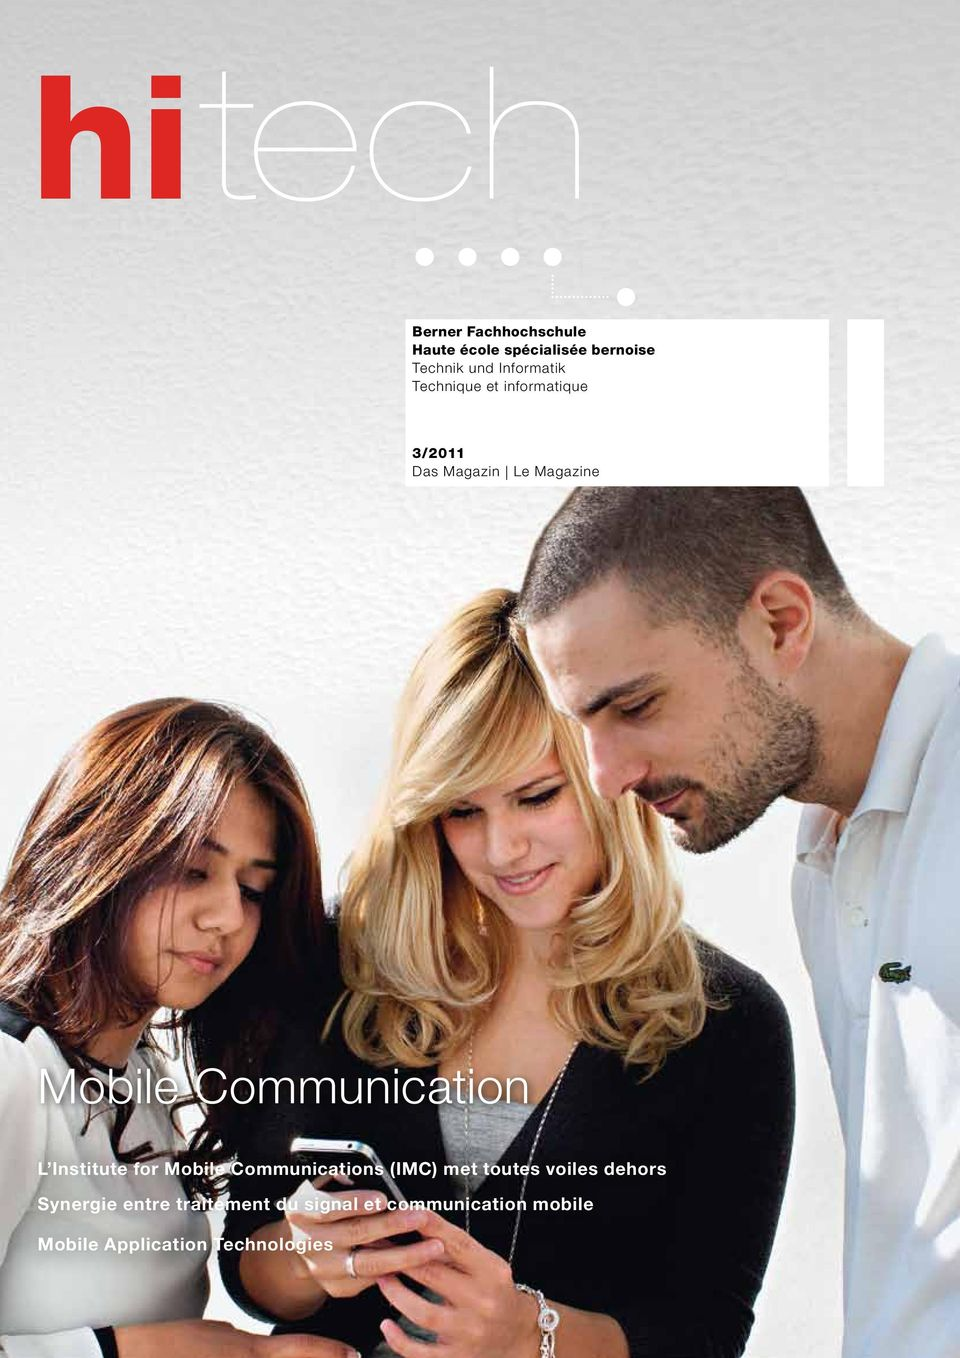 Communication L Institute for Mobile Communications (IMC) met toutes voiles